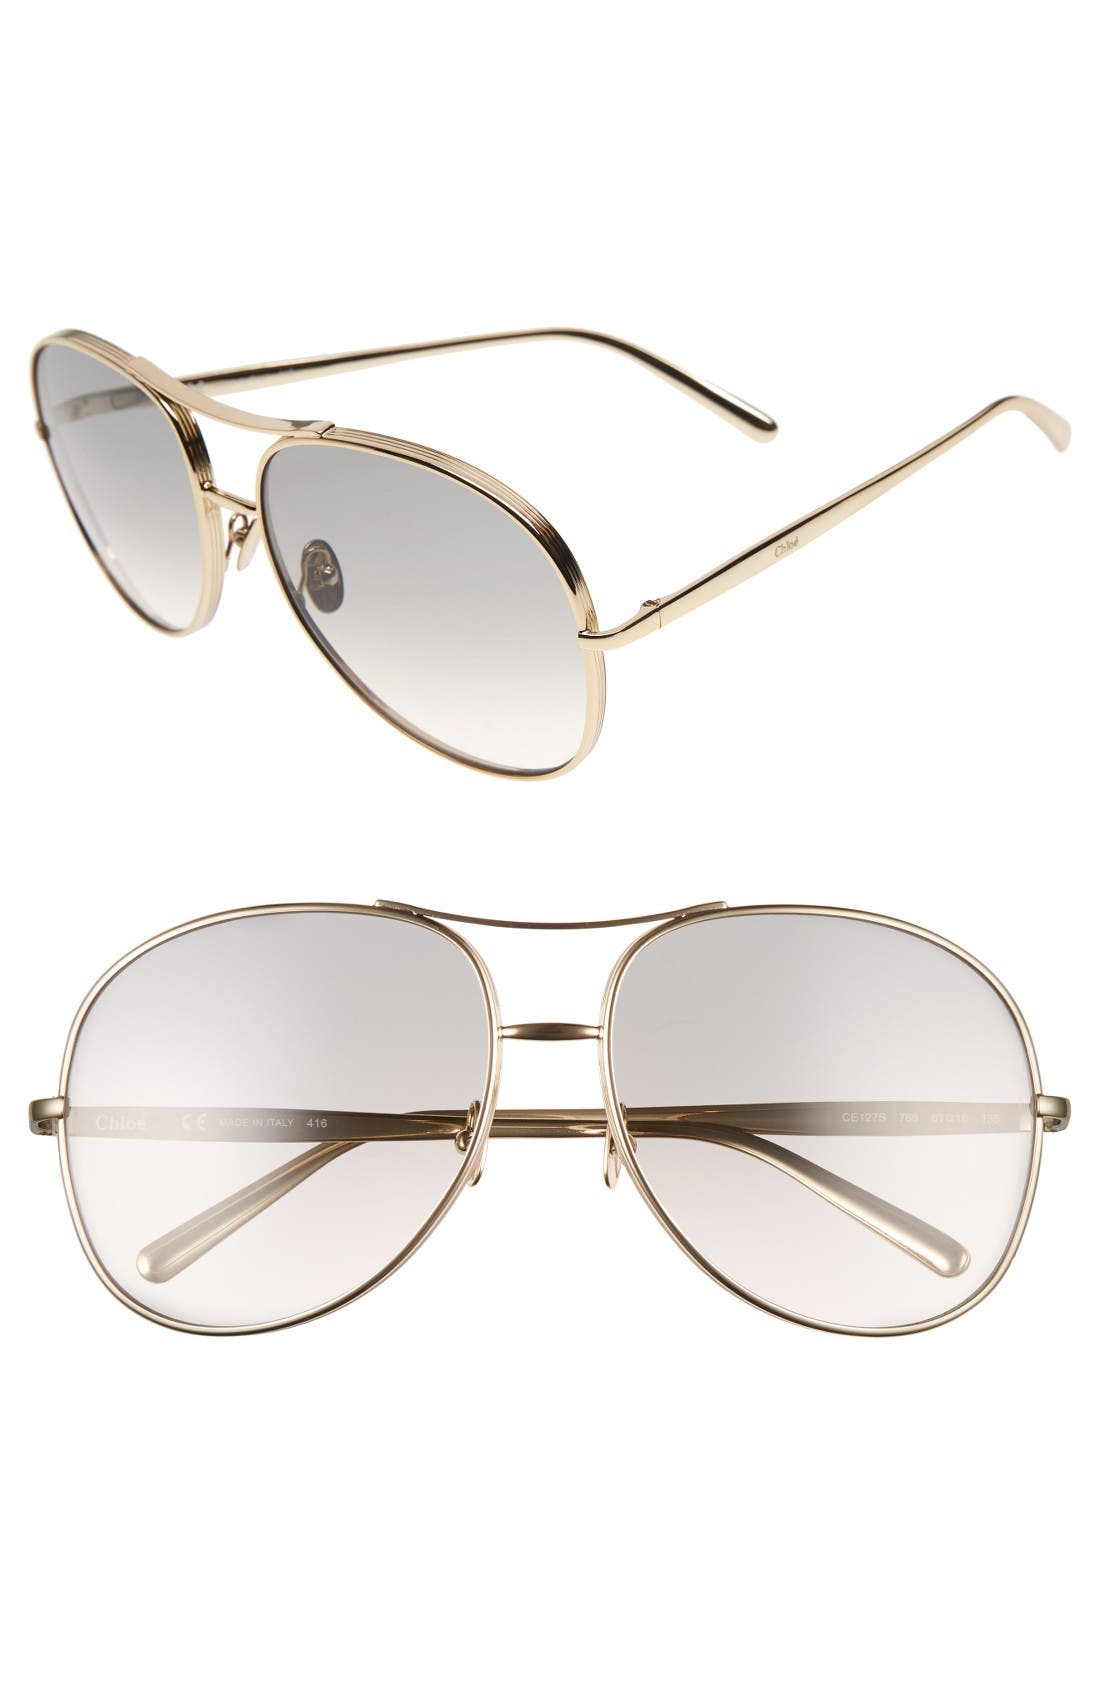 Chloé 61mm Oversize Sunglasses